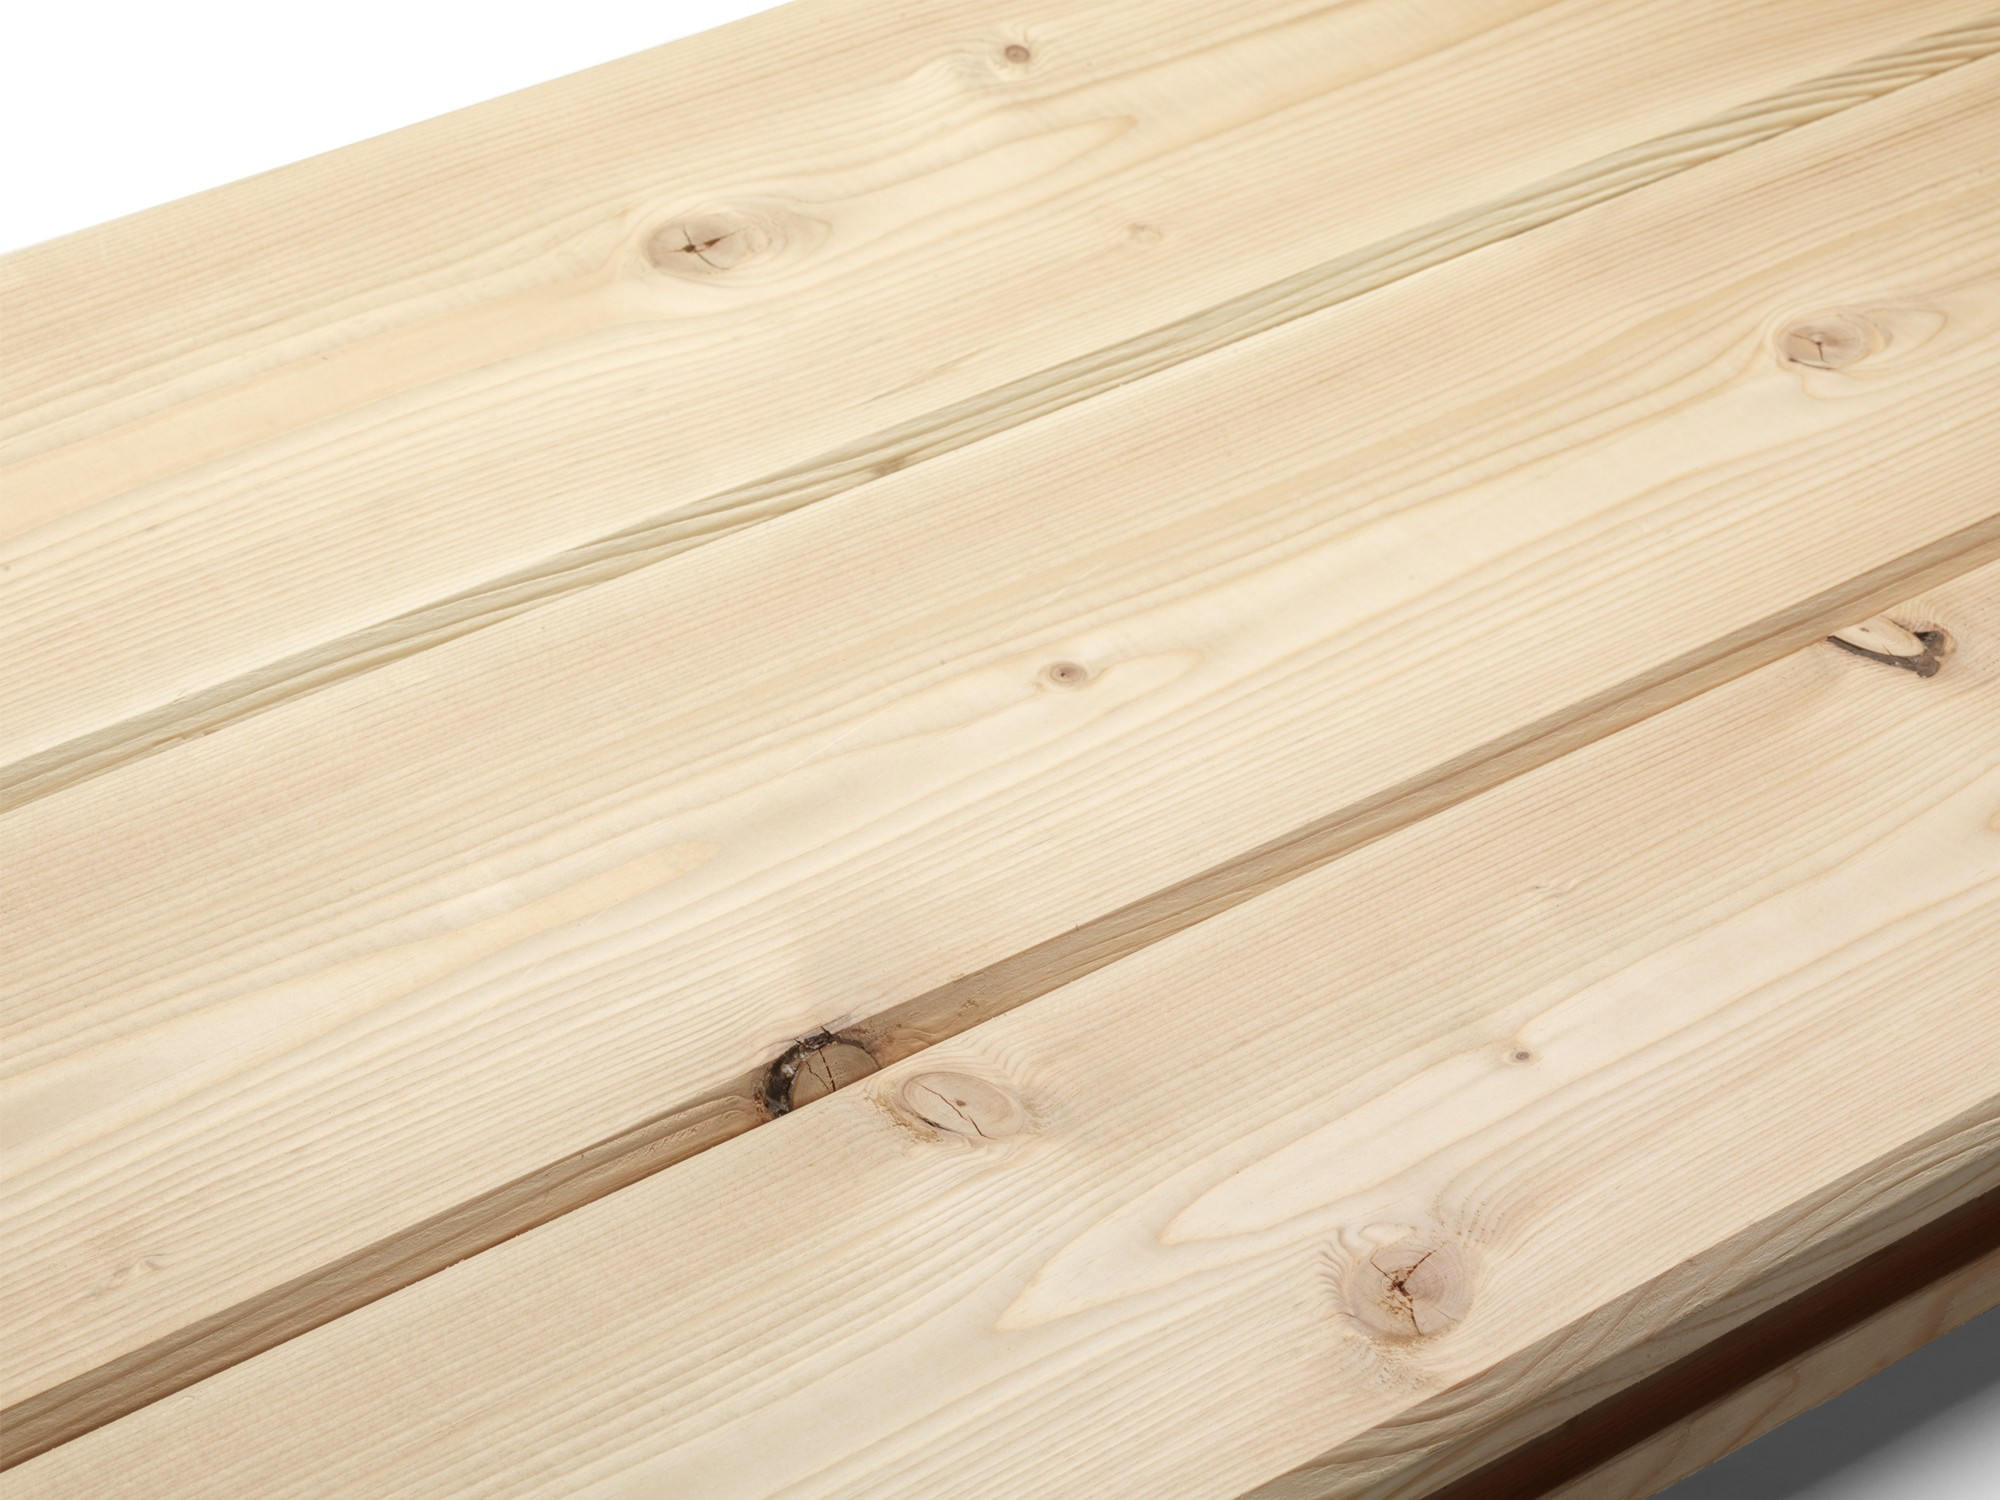 1x6 Knotty Douglas Fir Paneling with V-groove